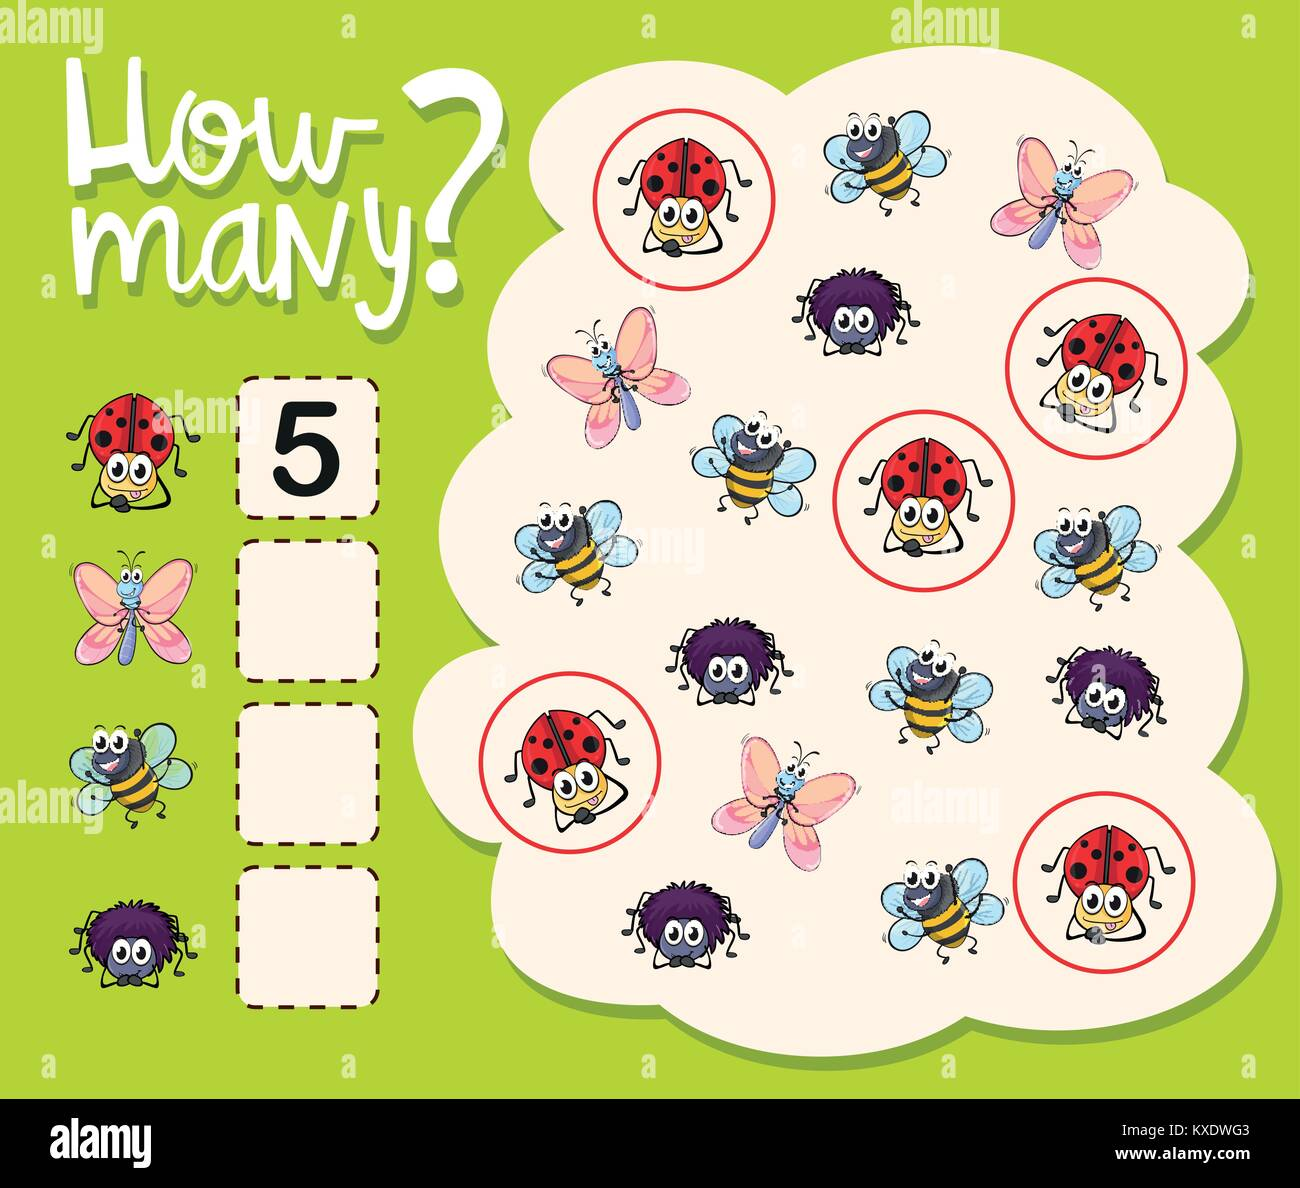 How Many Worksheet With Many Insects Illustration Stock